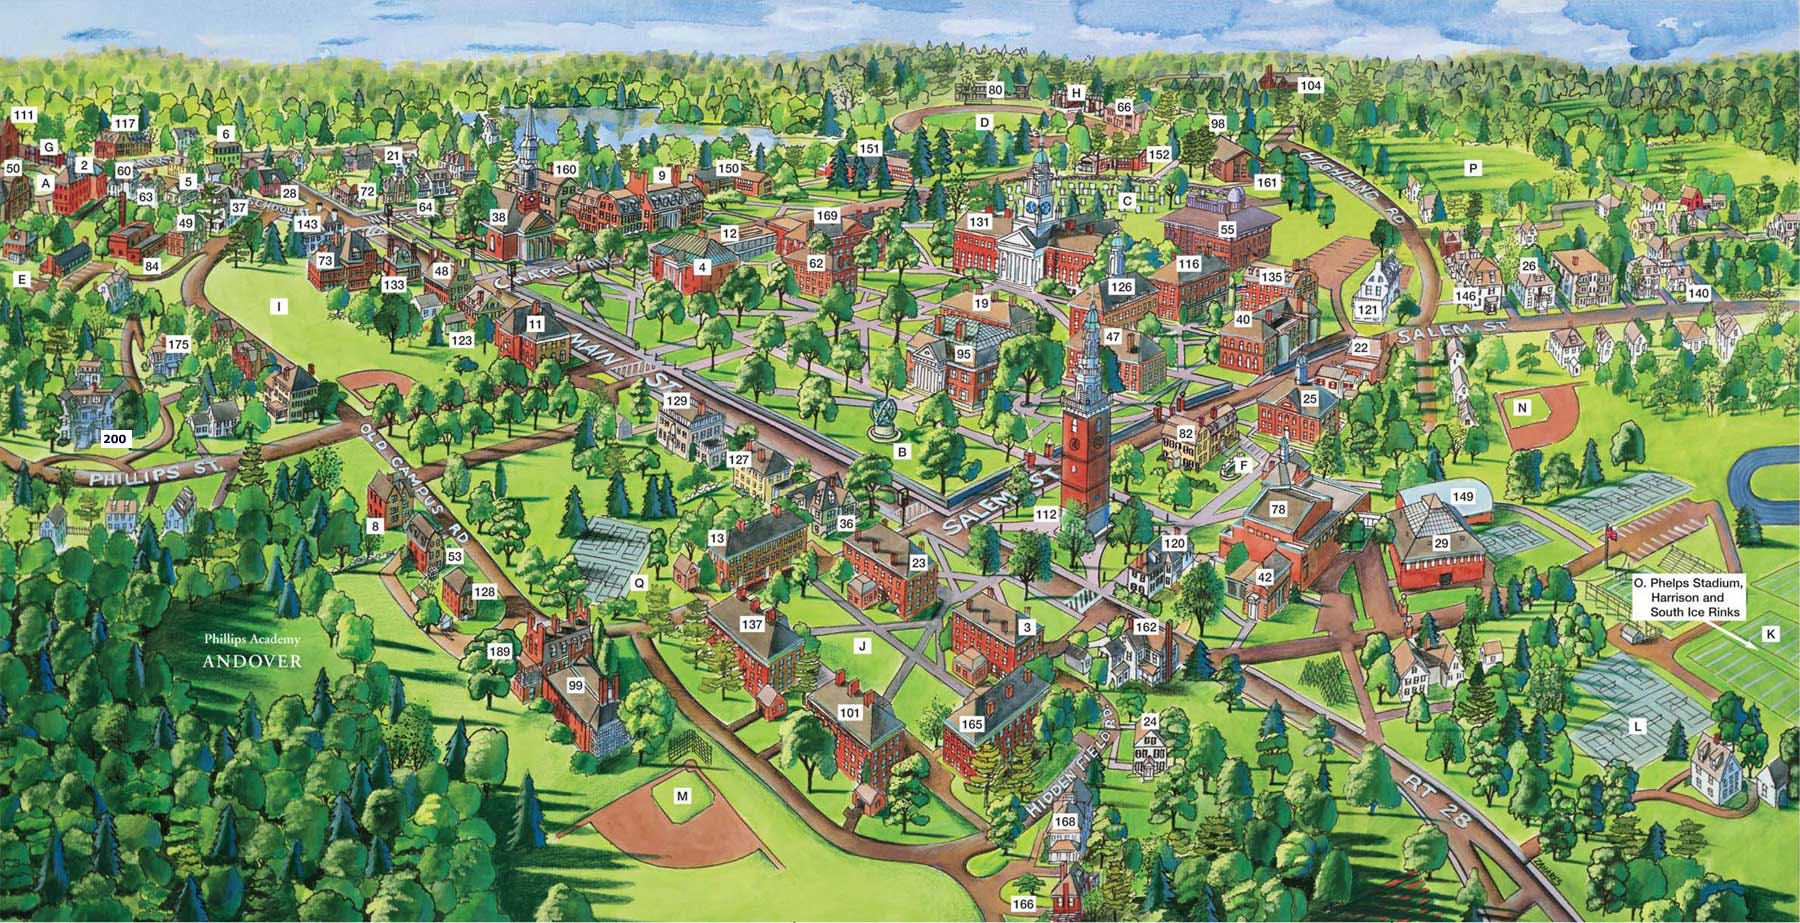 phillips exeter academy campus map Pa Map Campus Map Best Boarding Schools What Is Like phillips exeter academy campus map